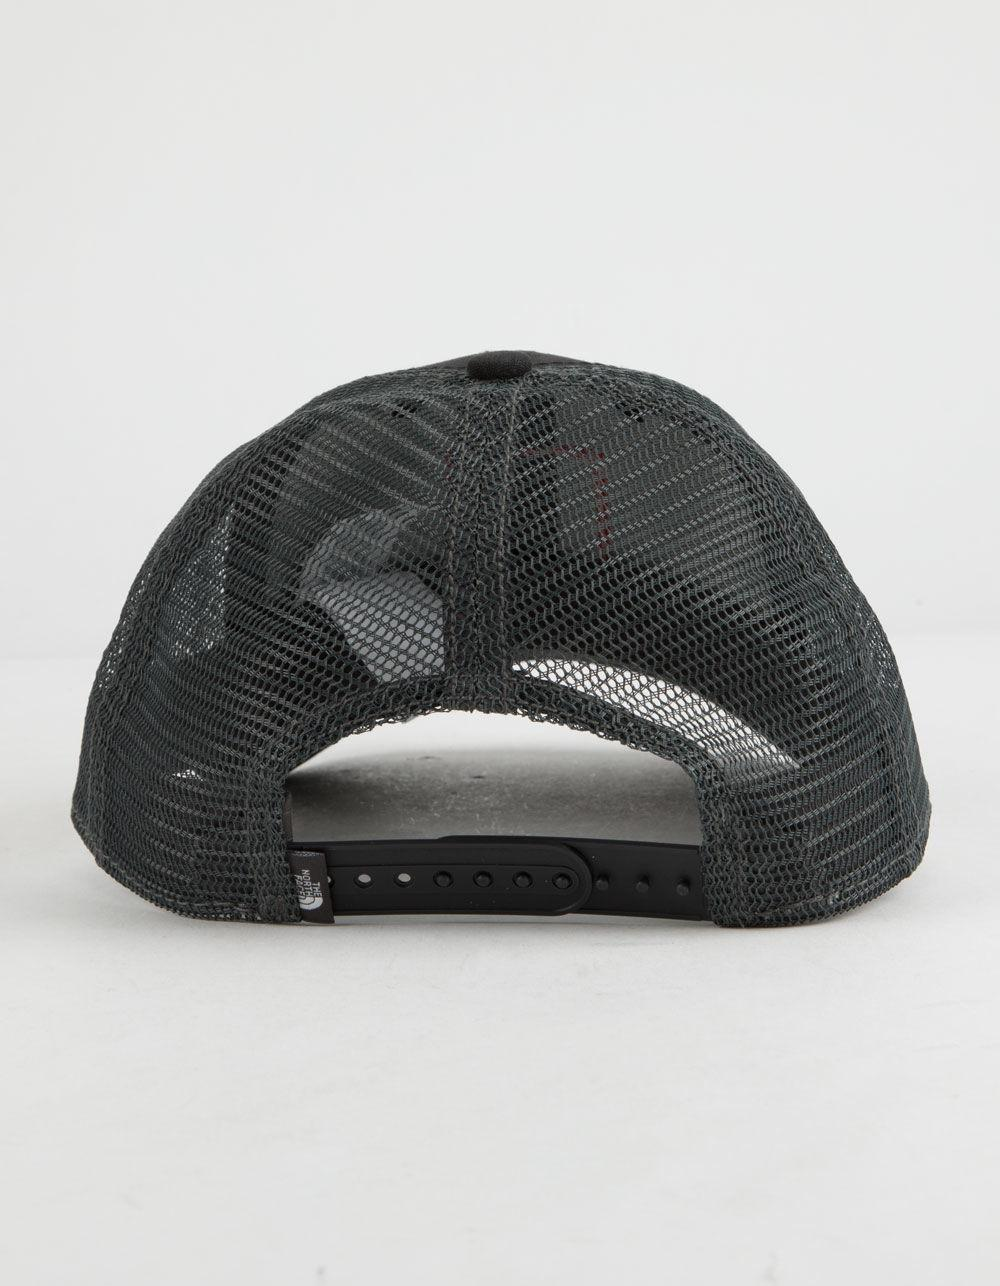 719037f6305 Lyst - The North Face Box Logo Trucker Hat in Black for Men - Save 32%